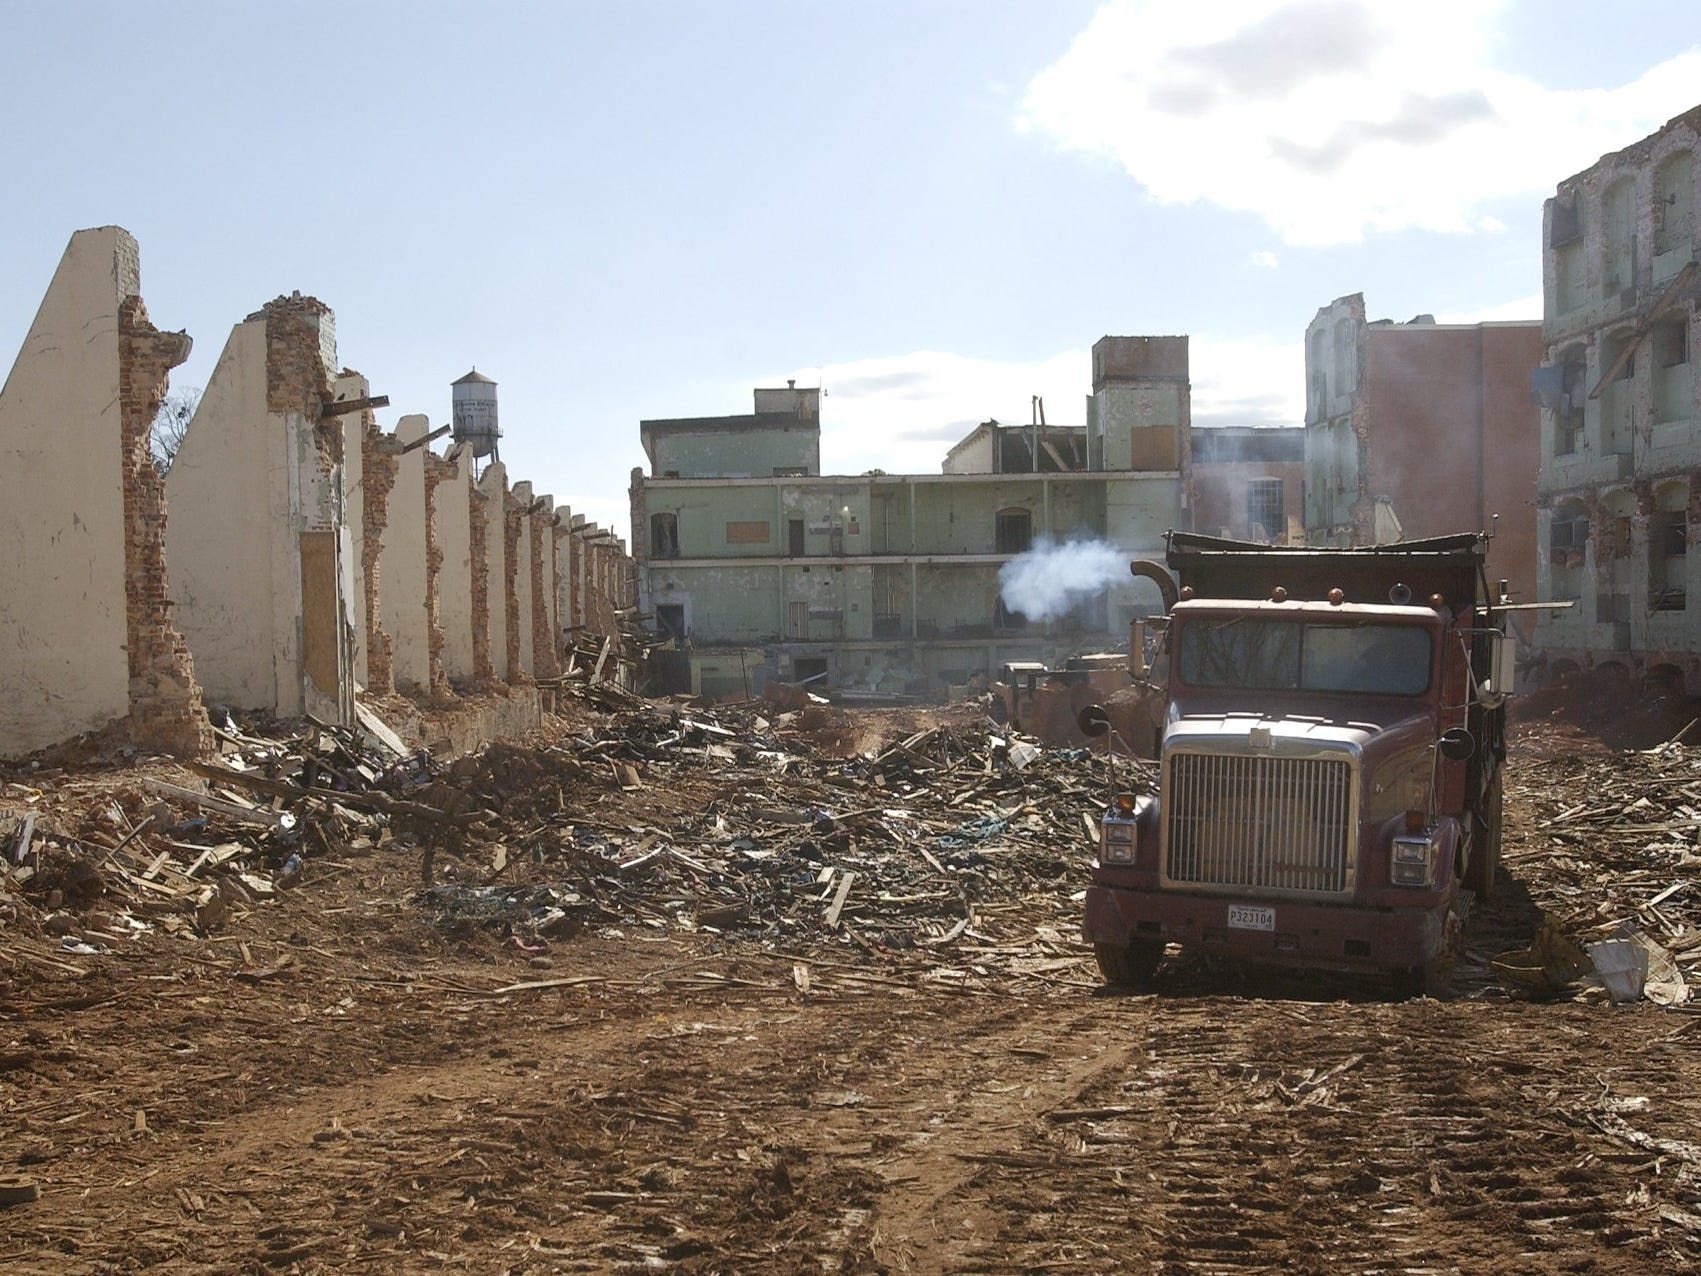 Demolition of Victor Mill in Greer continues in this archive photo from February 2005.